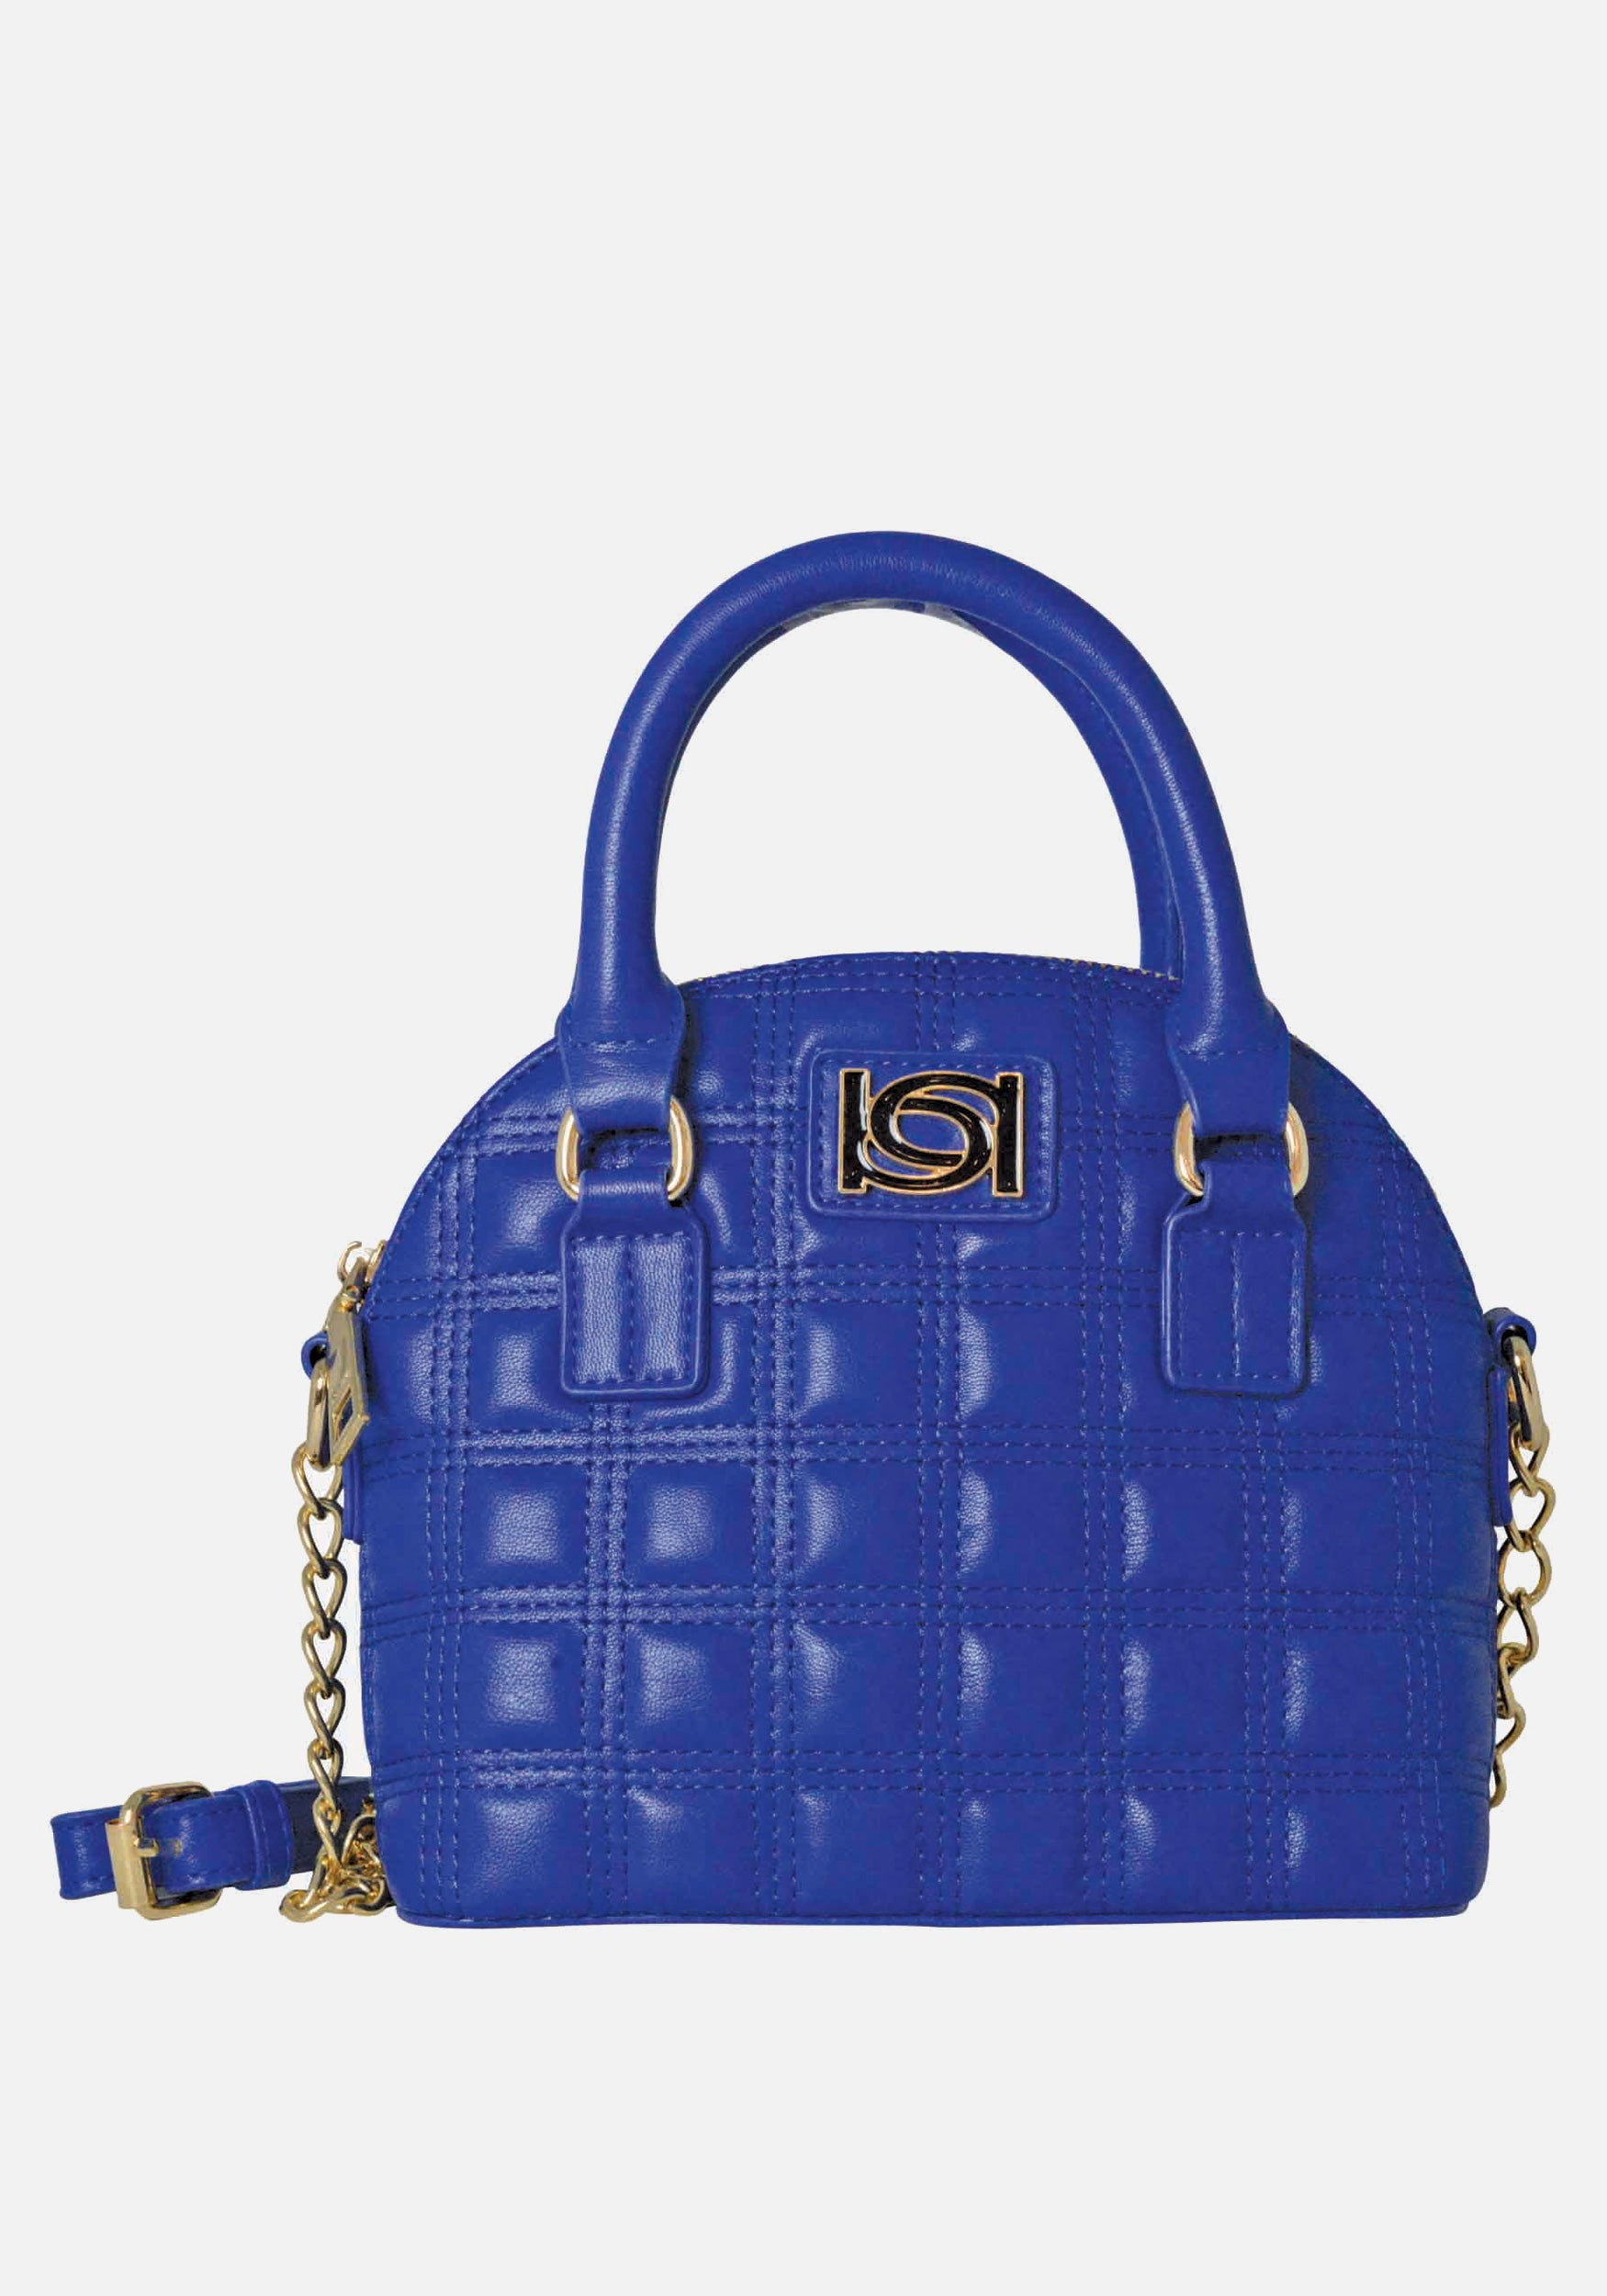 Bebe Women's Maia Mini Dome Crossbody in Electric Blue Polyester